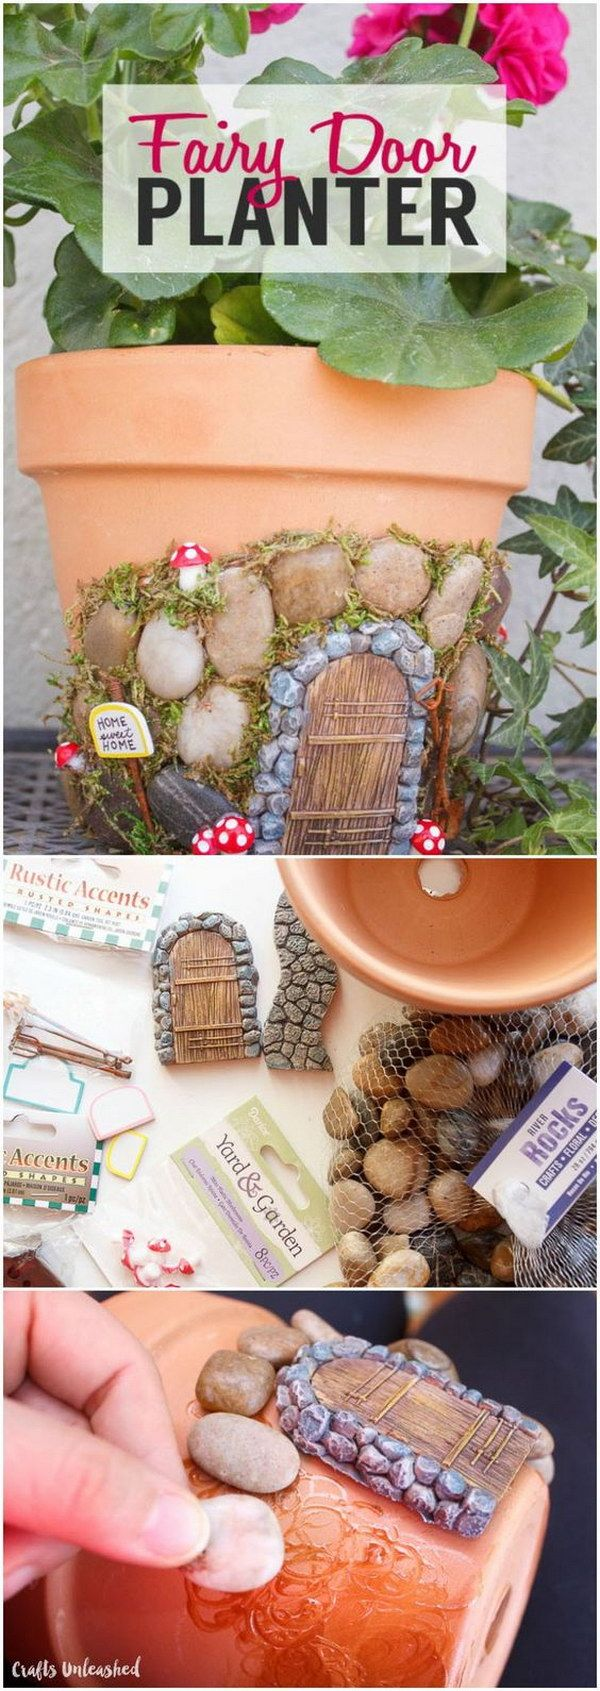 35 Awesome DIY Fairy Garden Ideas & Tutorials is part of Fairy garden diy - Ever dreamed of having a micro garden  Then fairy gardens would be great for you  Fairy gardens might be inspired by mythical, magical and tiny creatures, but you obviously don't have to believe in fairytales to build one  All you need is creativ